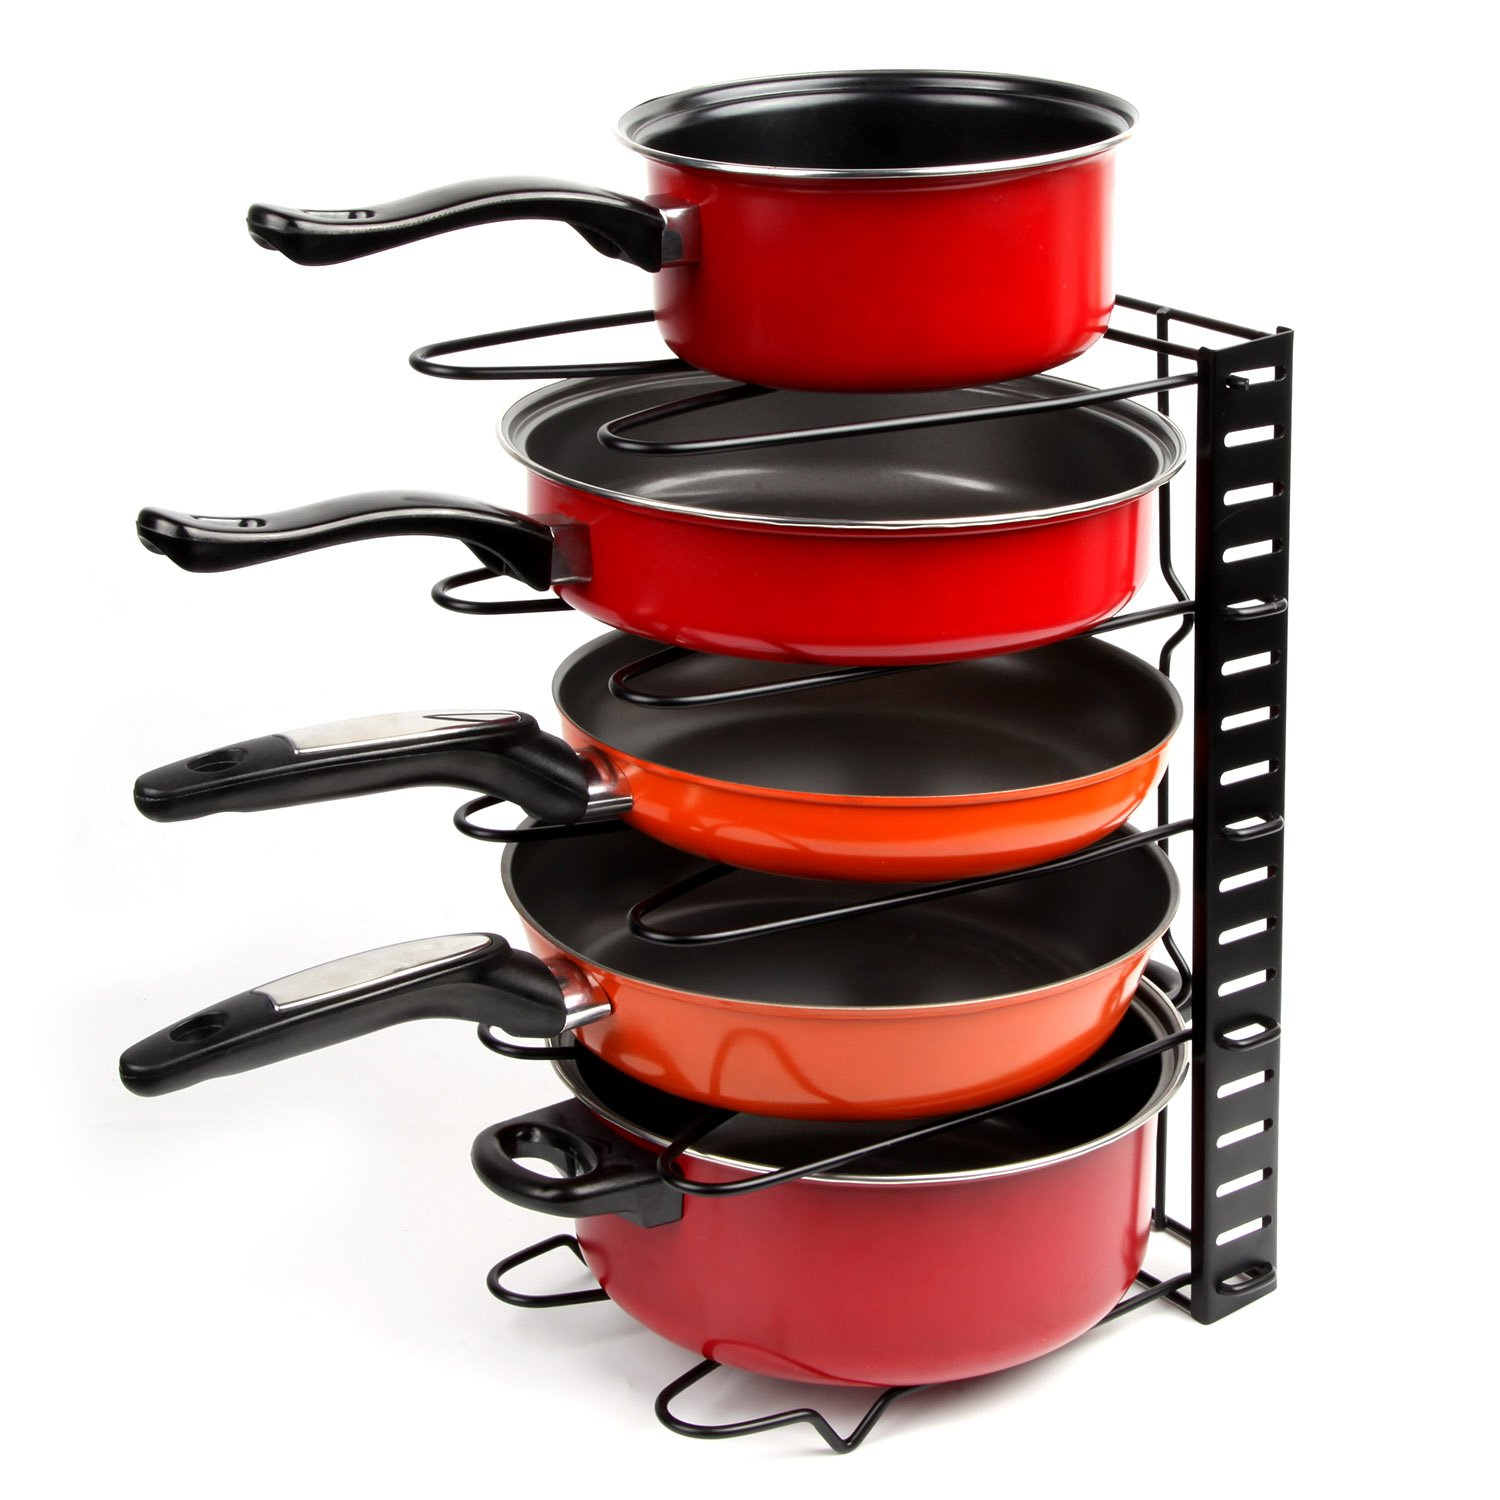 Vdomus Adjustable Pan Organizer Rack Pot Lid Cookware Holder for Kitchen Cabinet Pantry - Black Metal VMPR0010BK